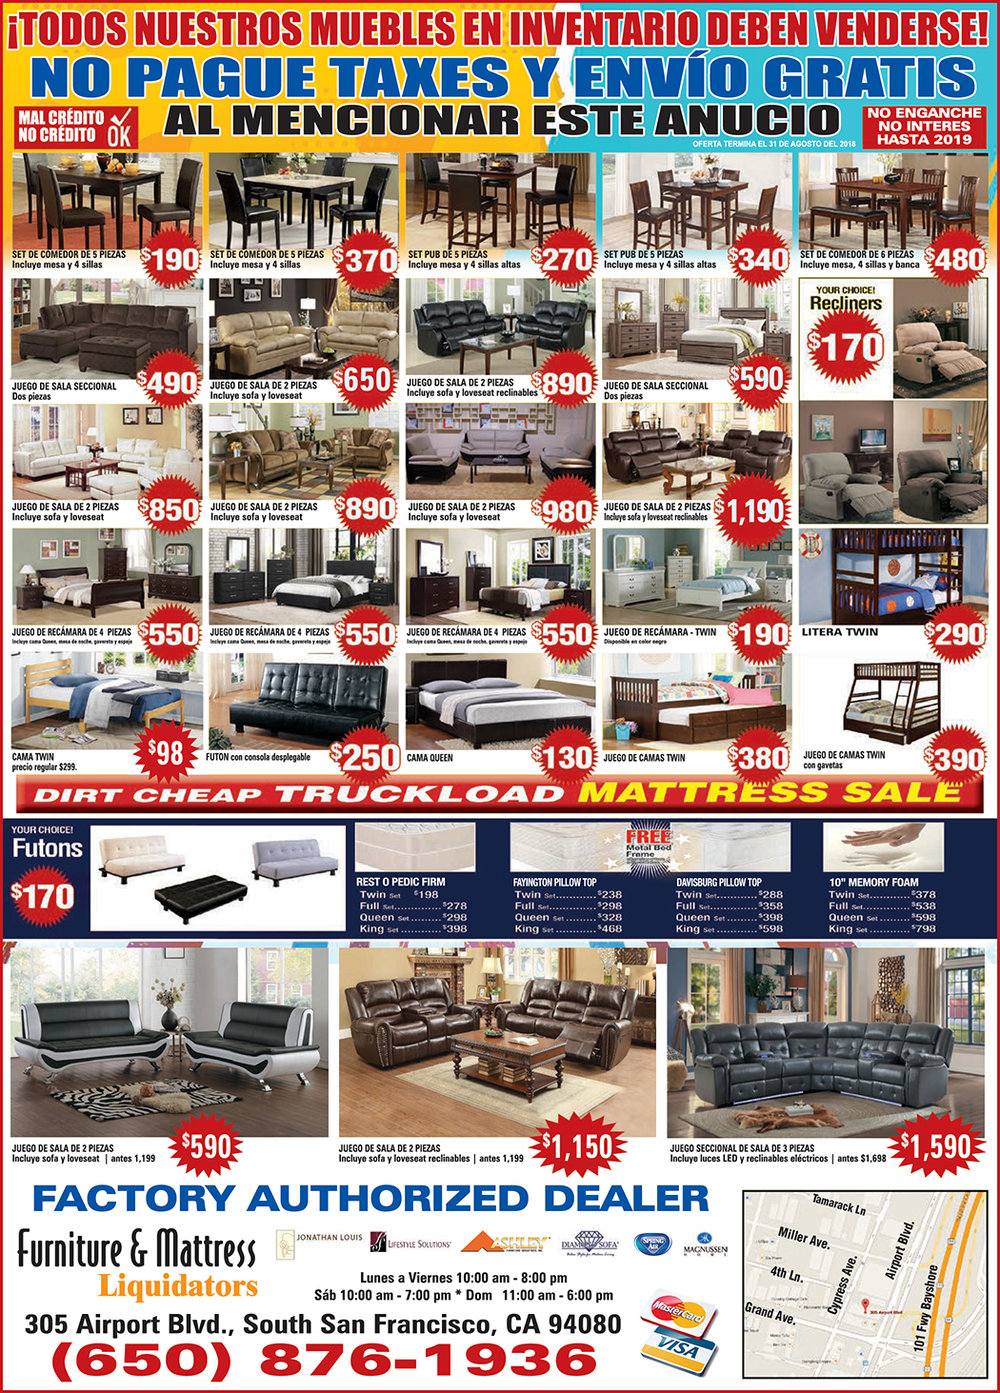 Furniture & Mattress Liquidators 1 Pag  - AGOSTO 2018 copy.jpg